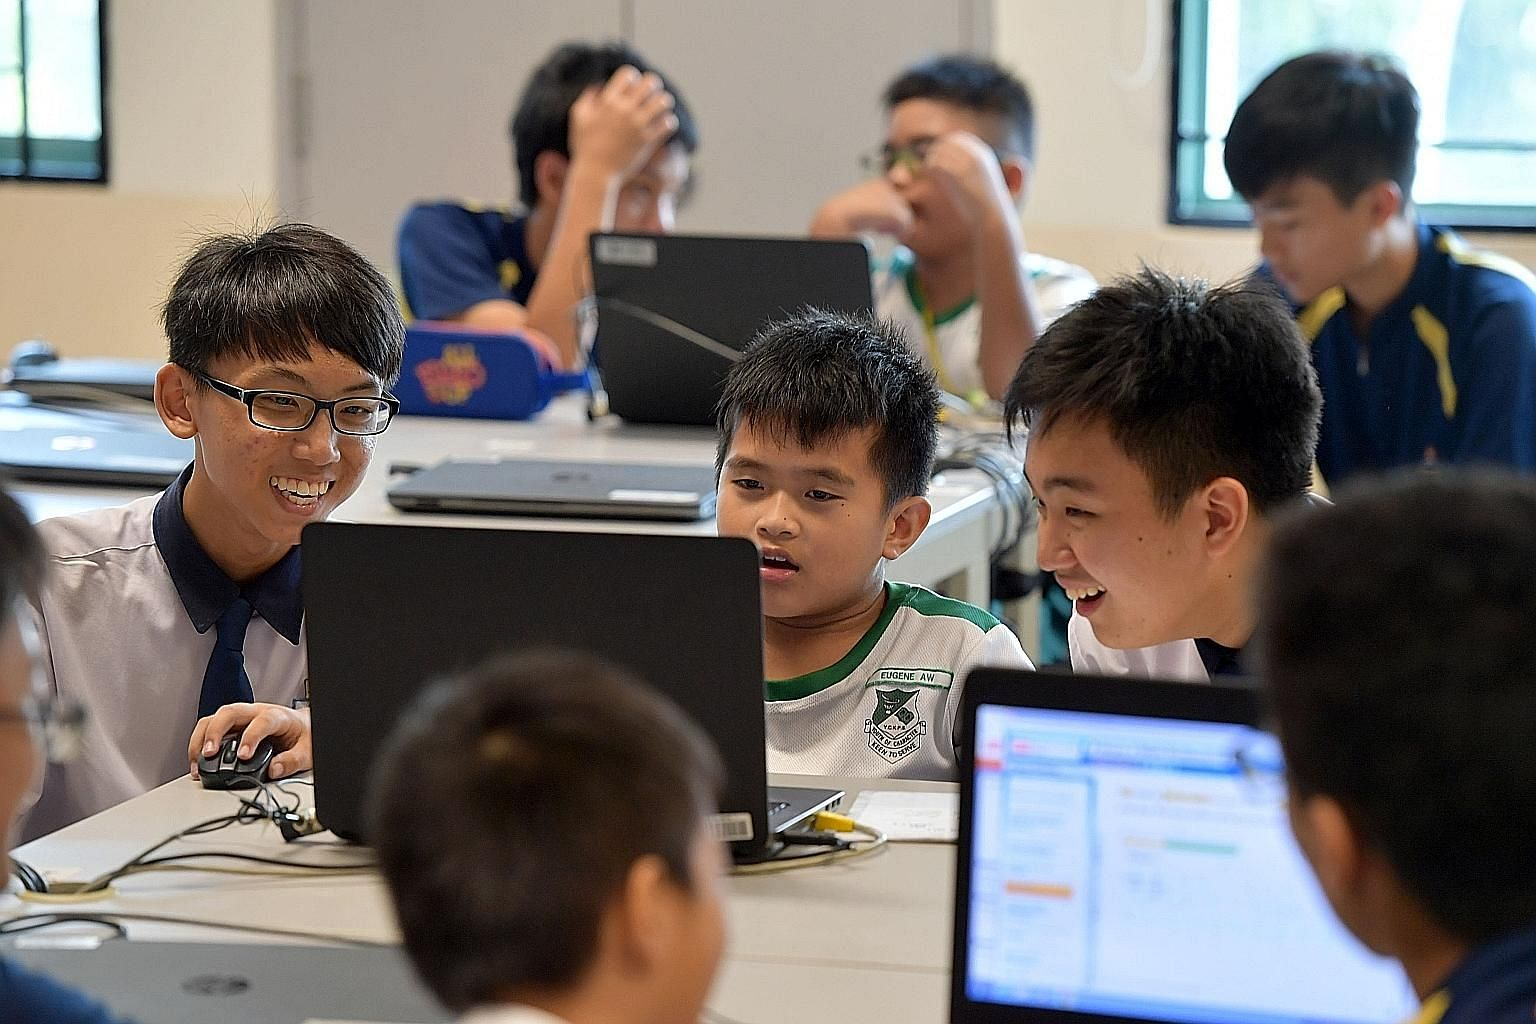 The aim of adjusting the school-based assessment structures is to reduce the overemphasis on academic results and to nurture a stronger intrinsic motivation to learn in students, says the Ministry of Education. It added that parents' support and part